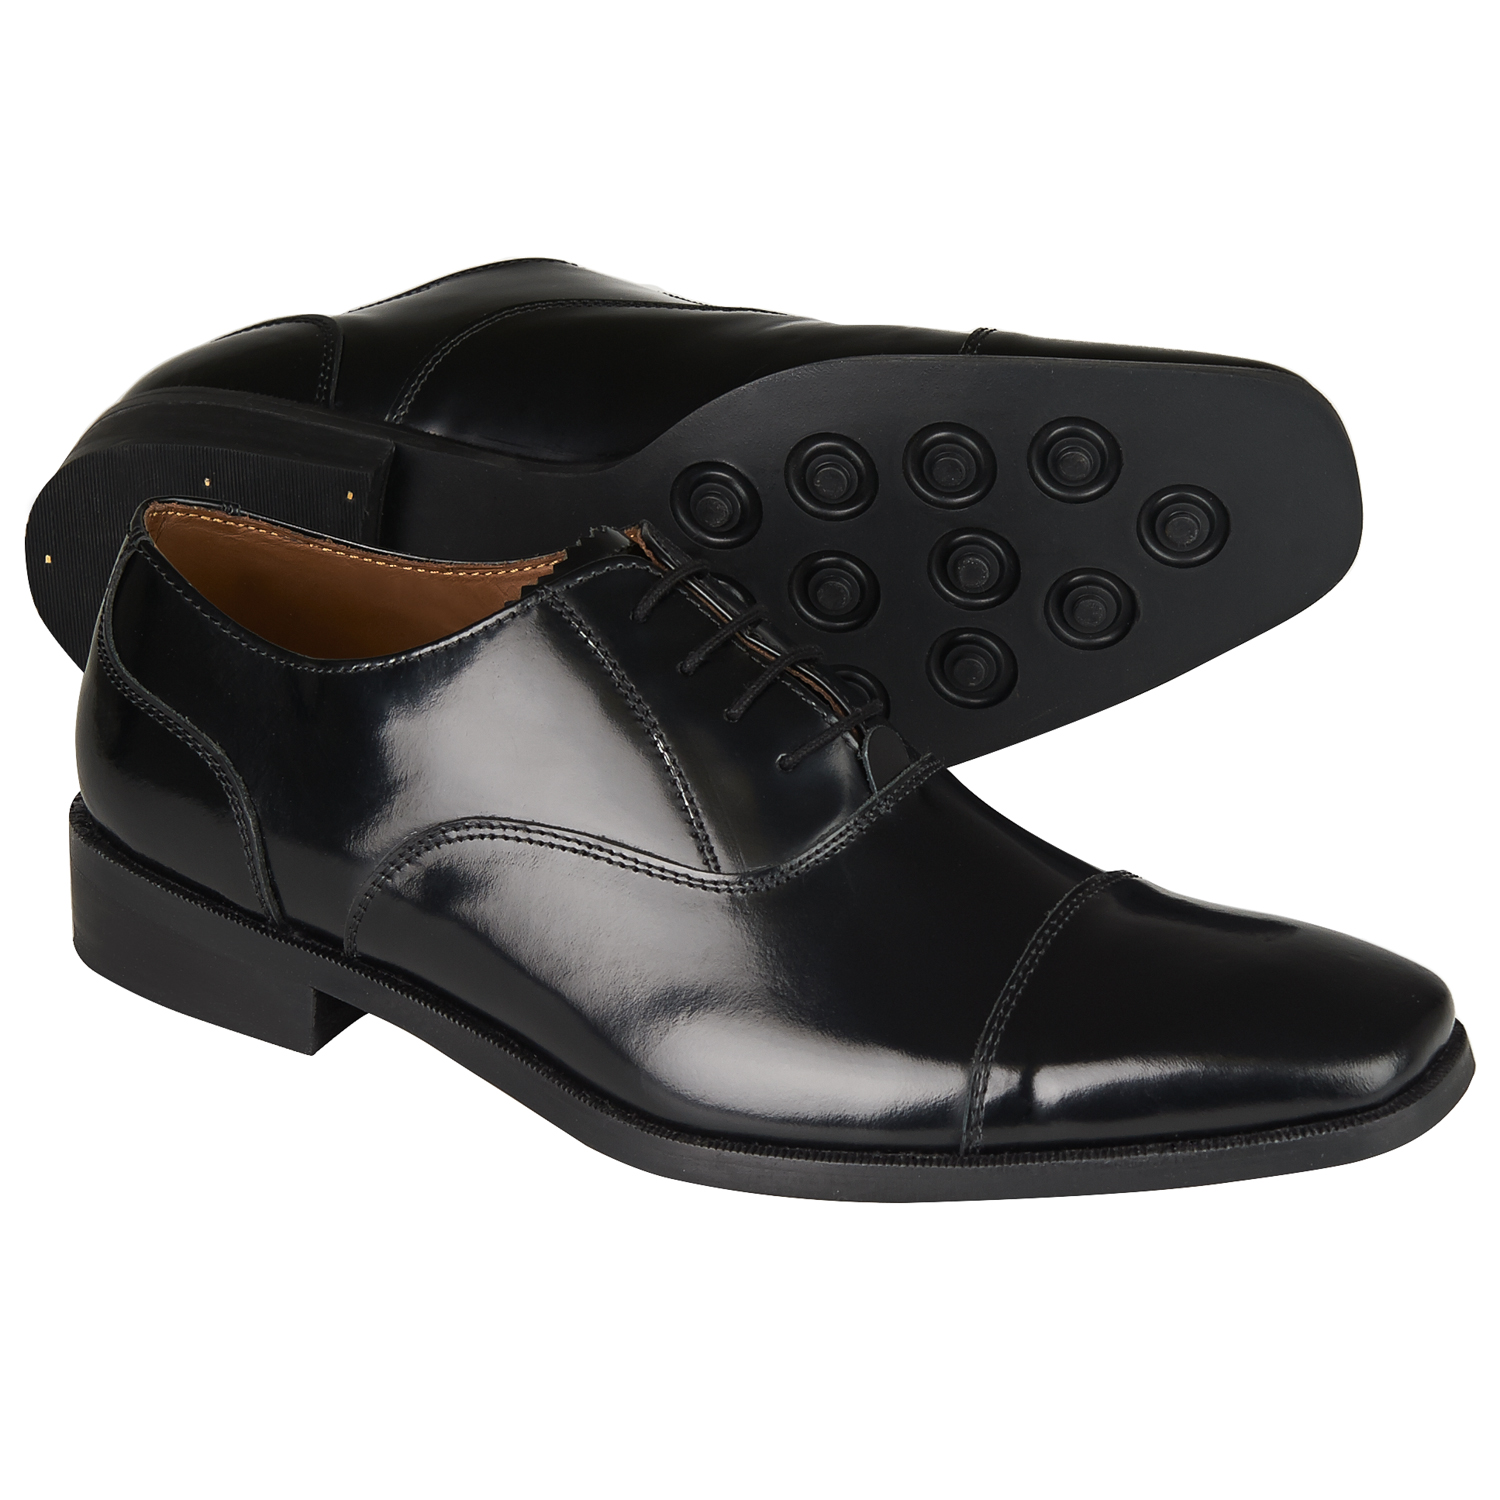 Moss London Shoes Price